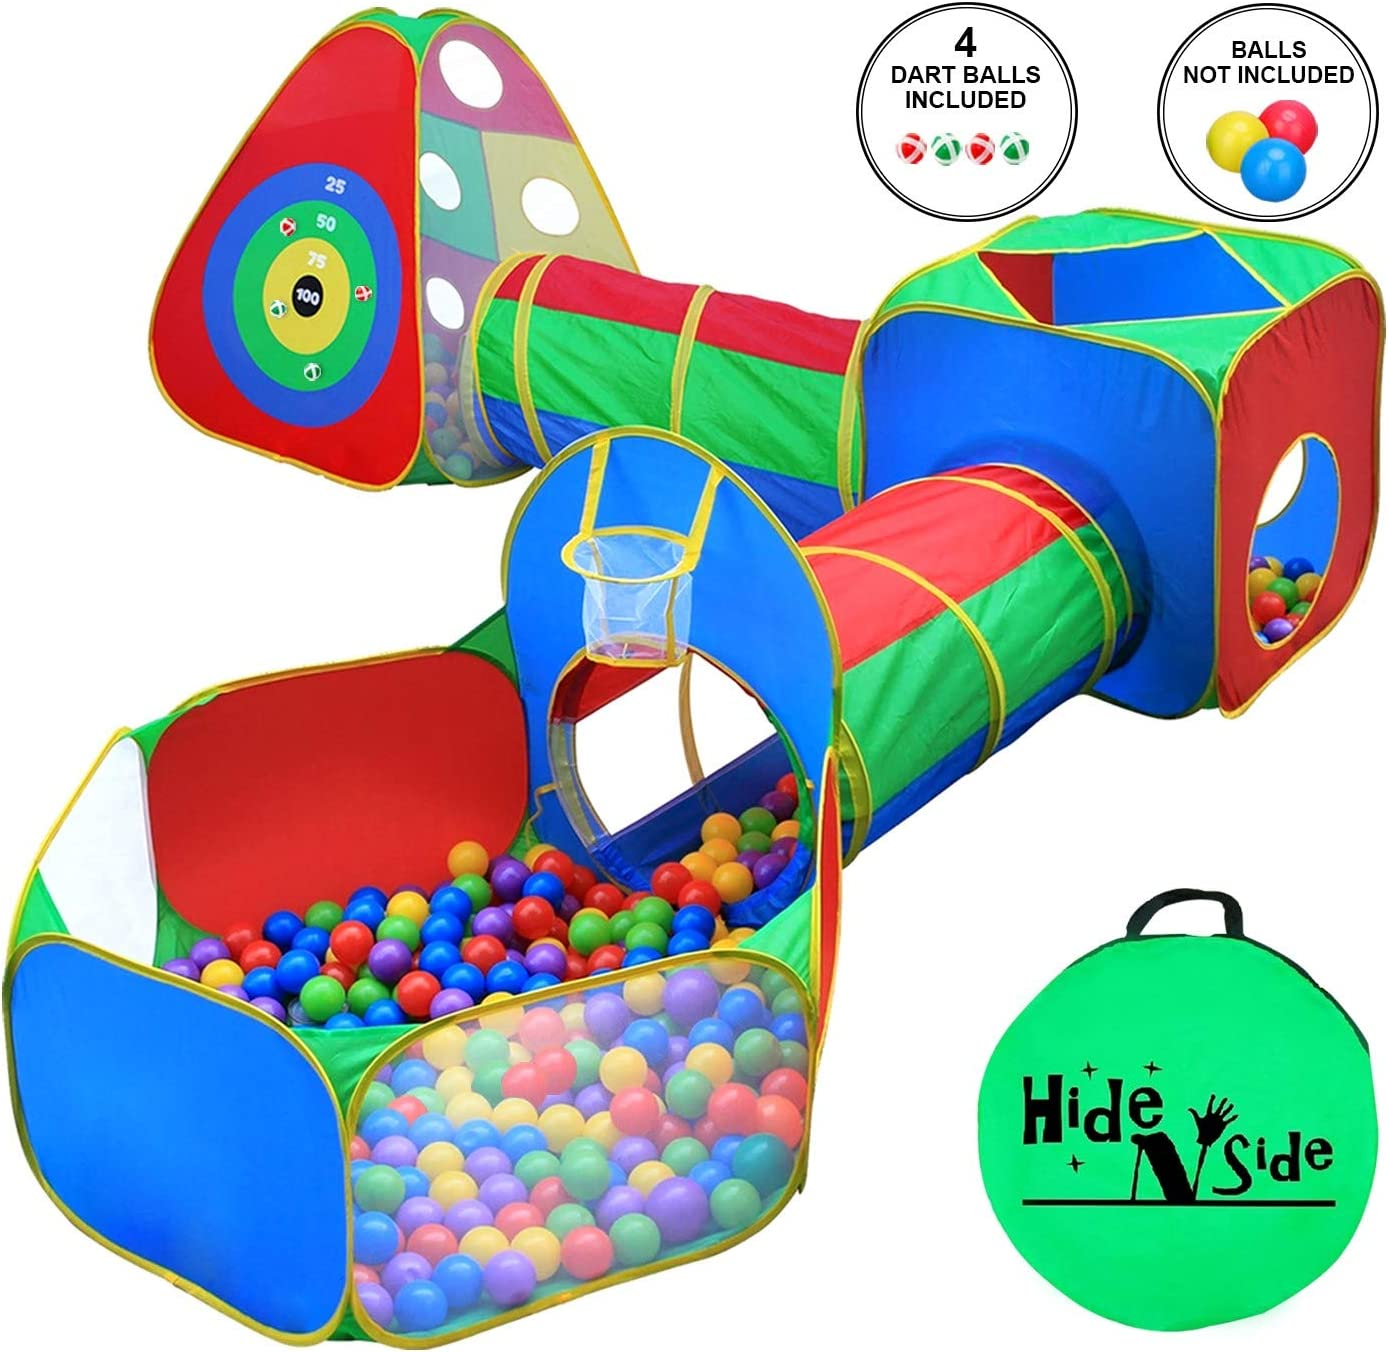 Top 9 Best Ball Pit For Kids Mothers Love (2020 Reviews) 1